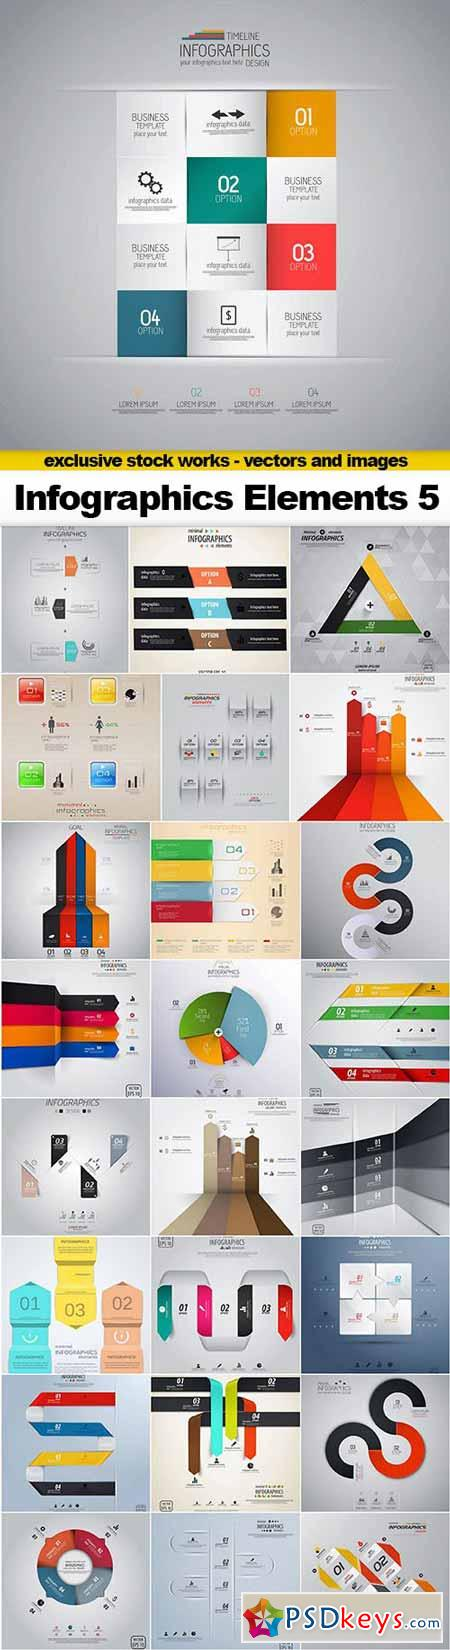 Infographics Vector Elements 5 - 25x EPS